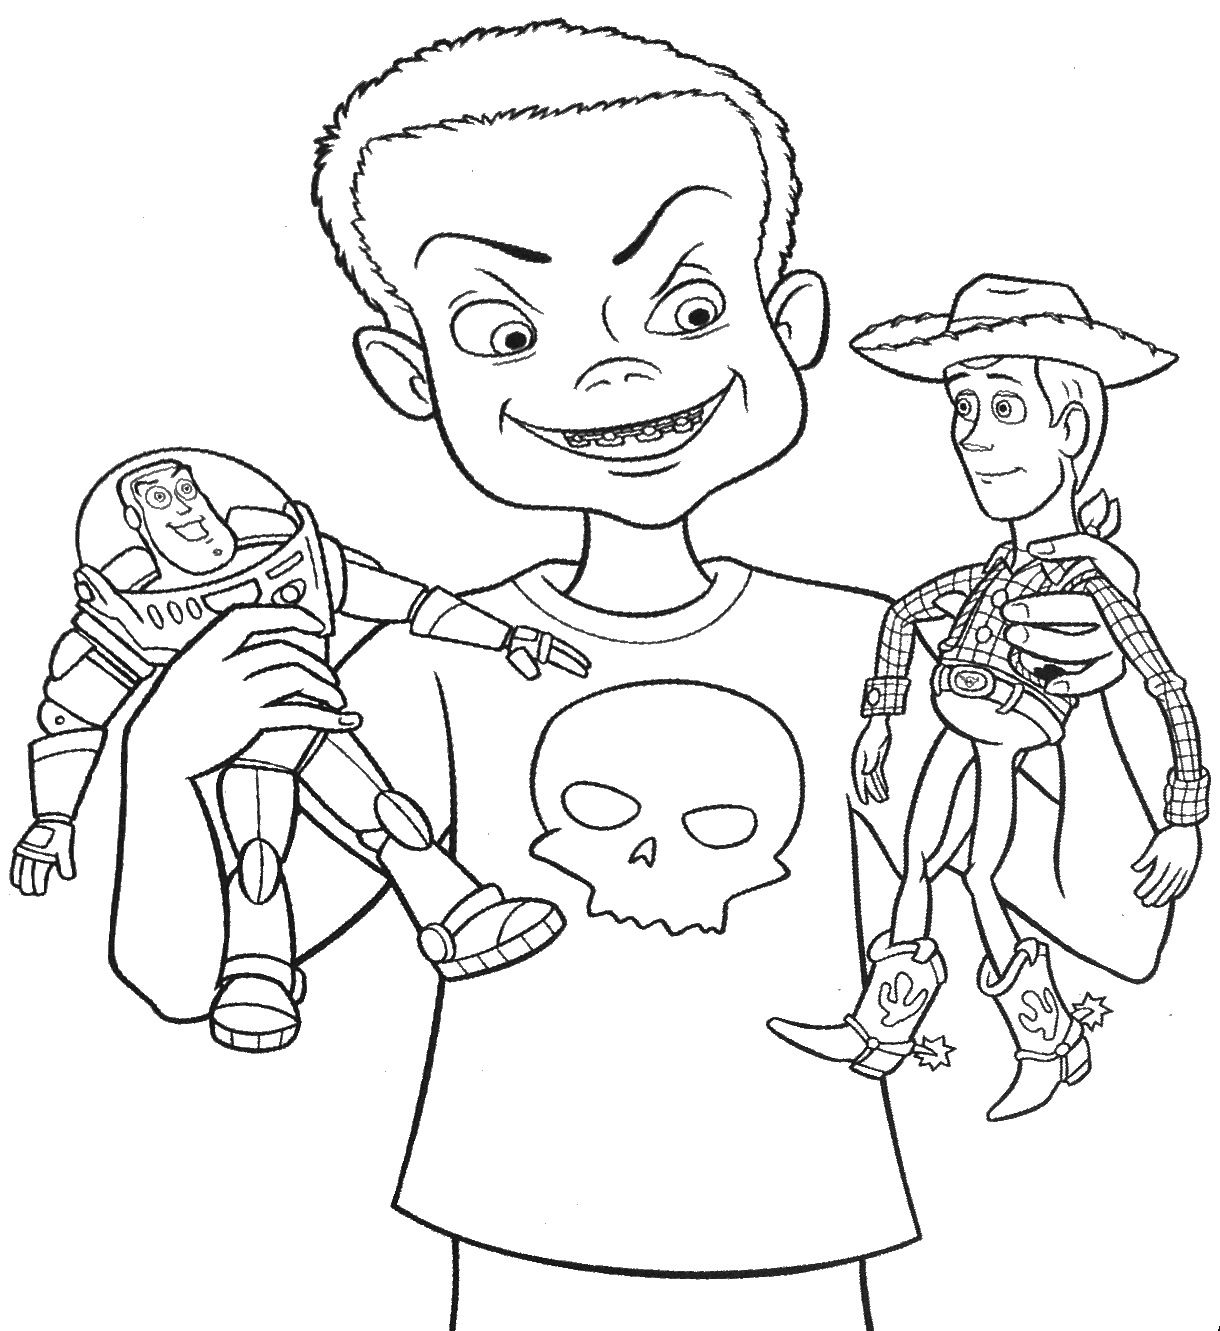 toy story coloring pages - Google-søgning | Coloring Pages (Toy ...